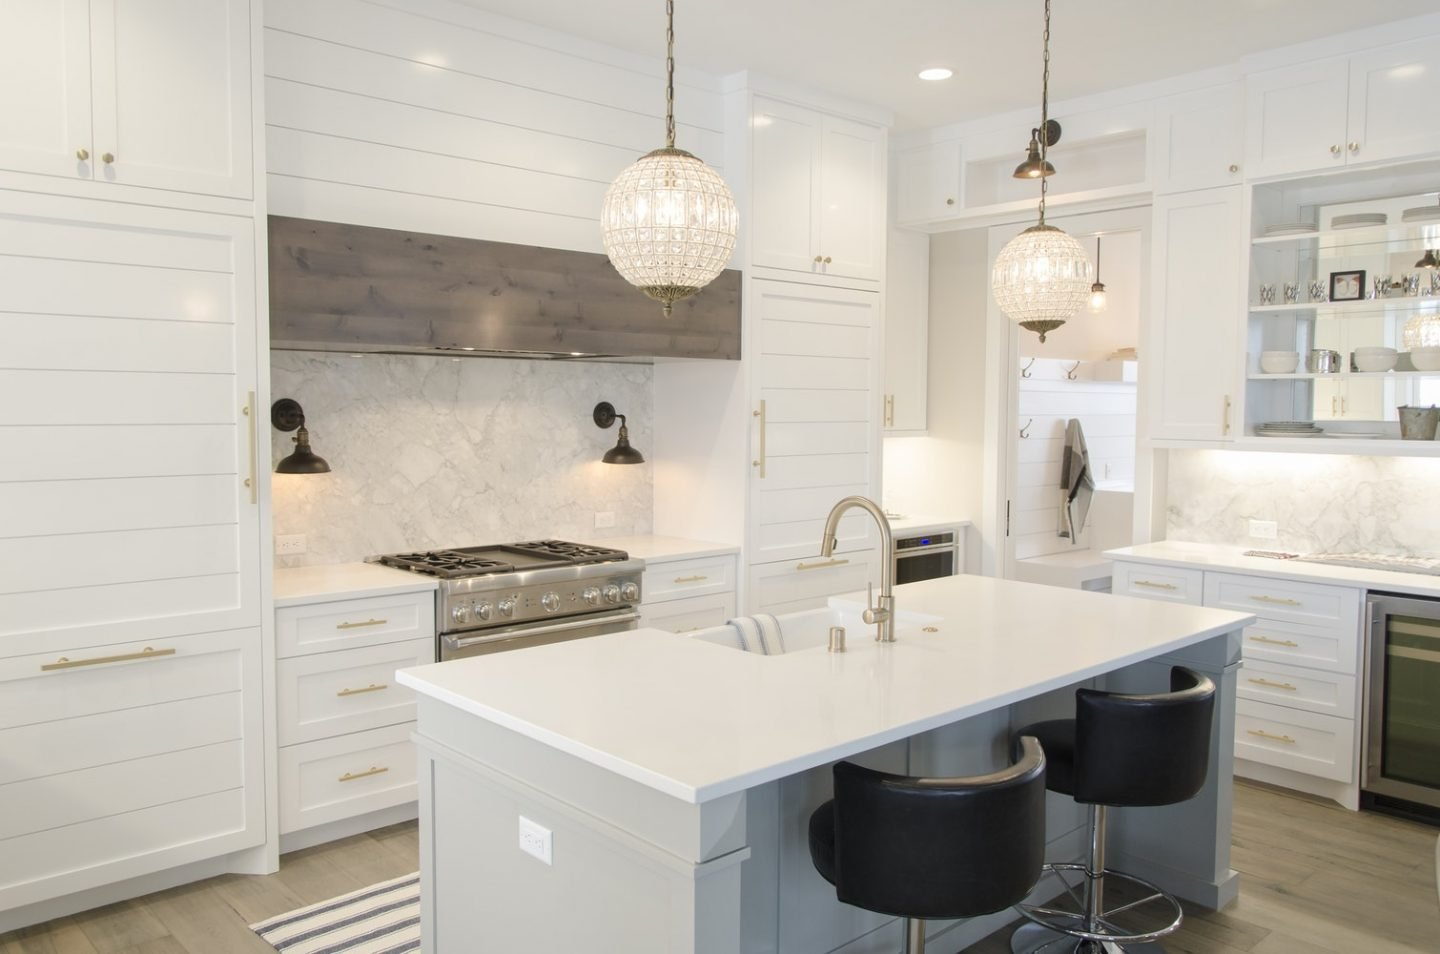 Style Your Kitchen Without the Stress